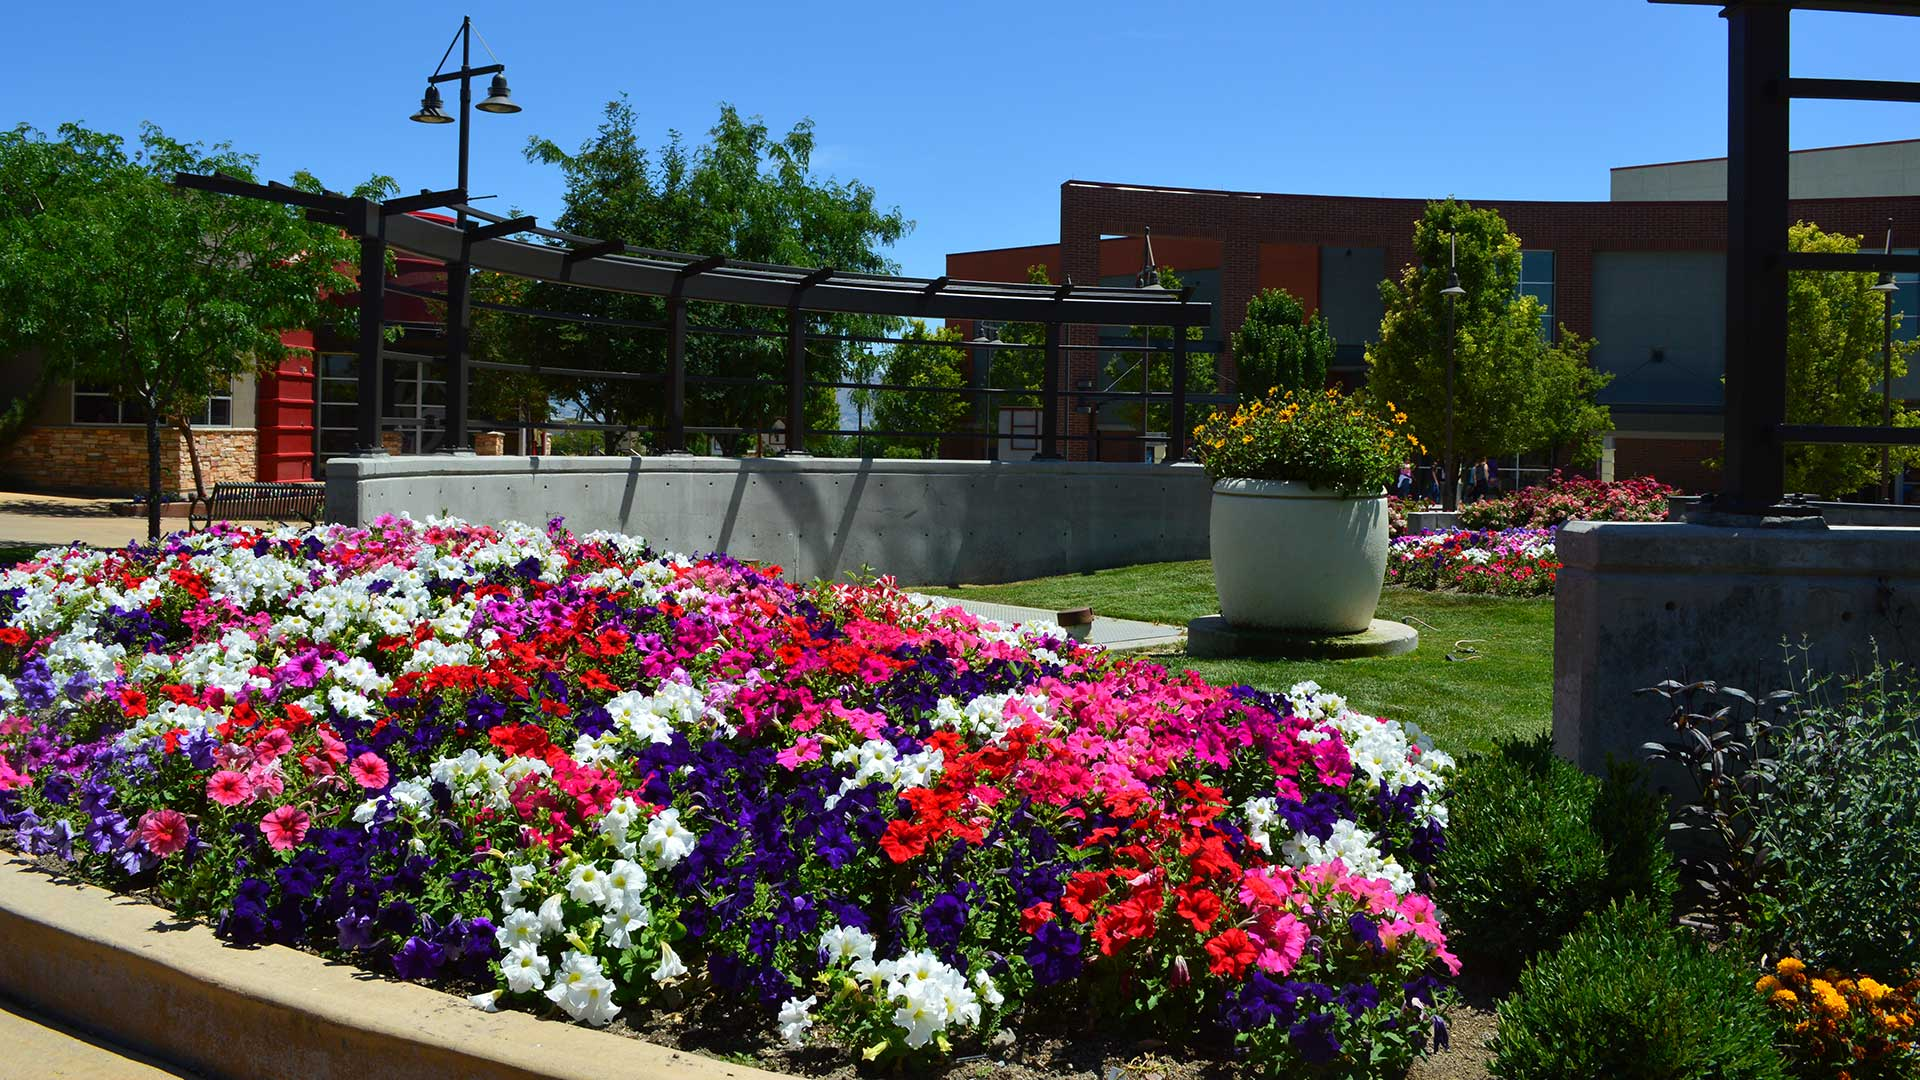 Commercial landscaping done for a business in Draper with annual flowers.